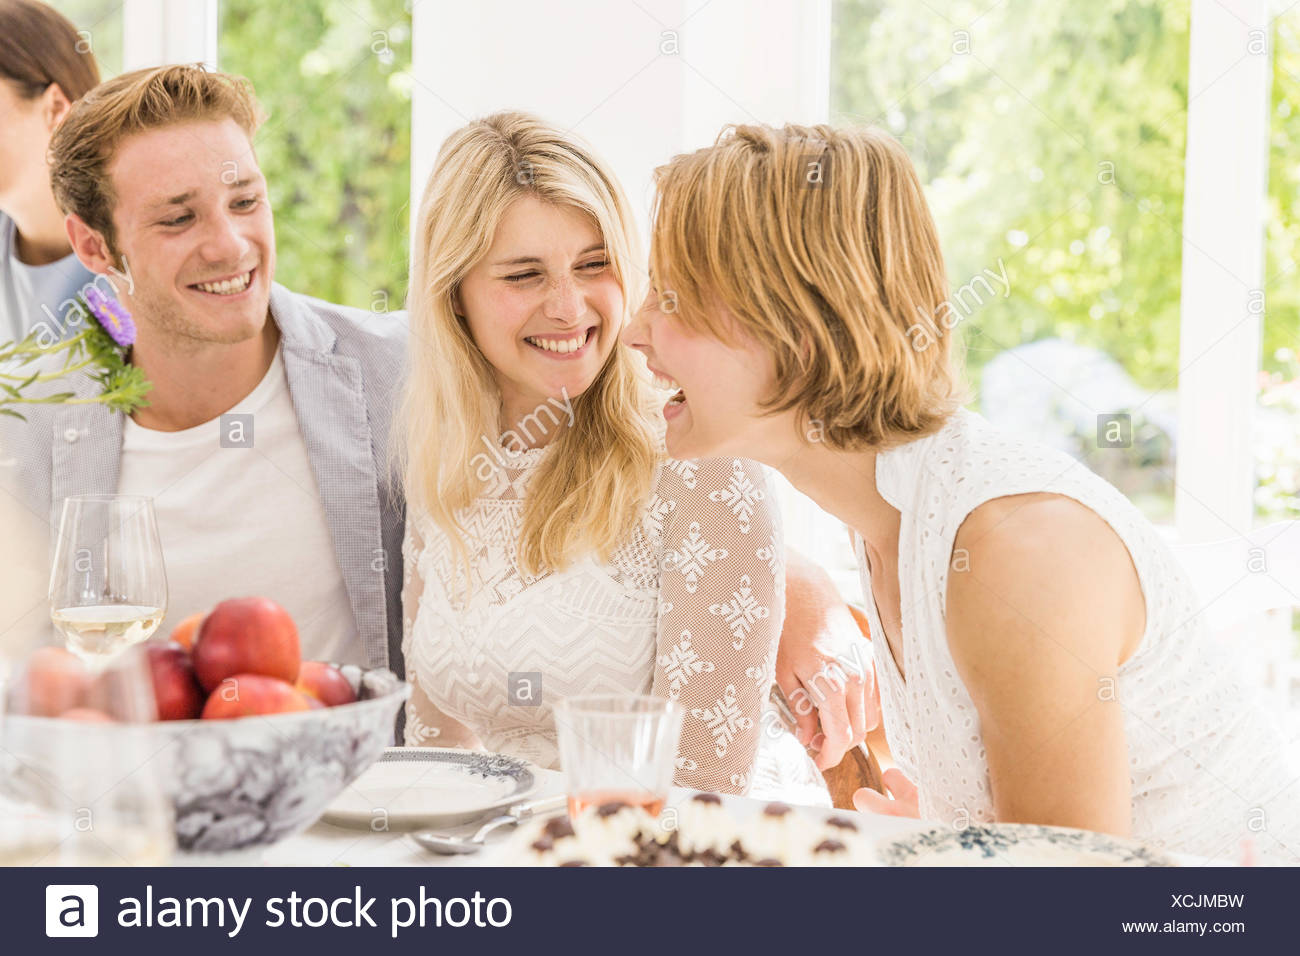 Family adults laughing and gossiping at birthday party - Stock Image